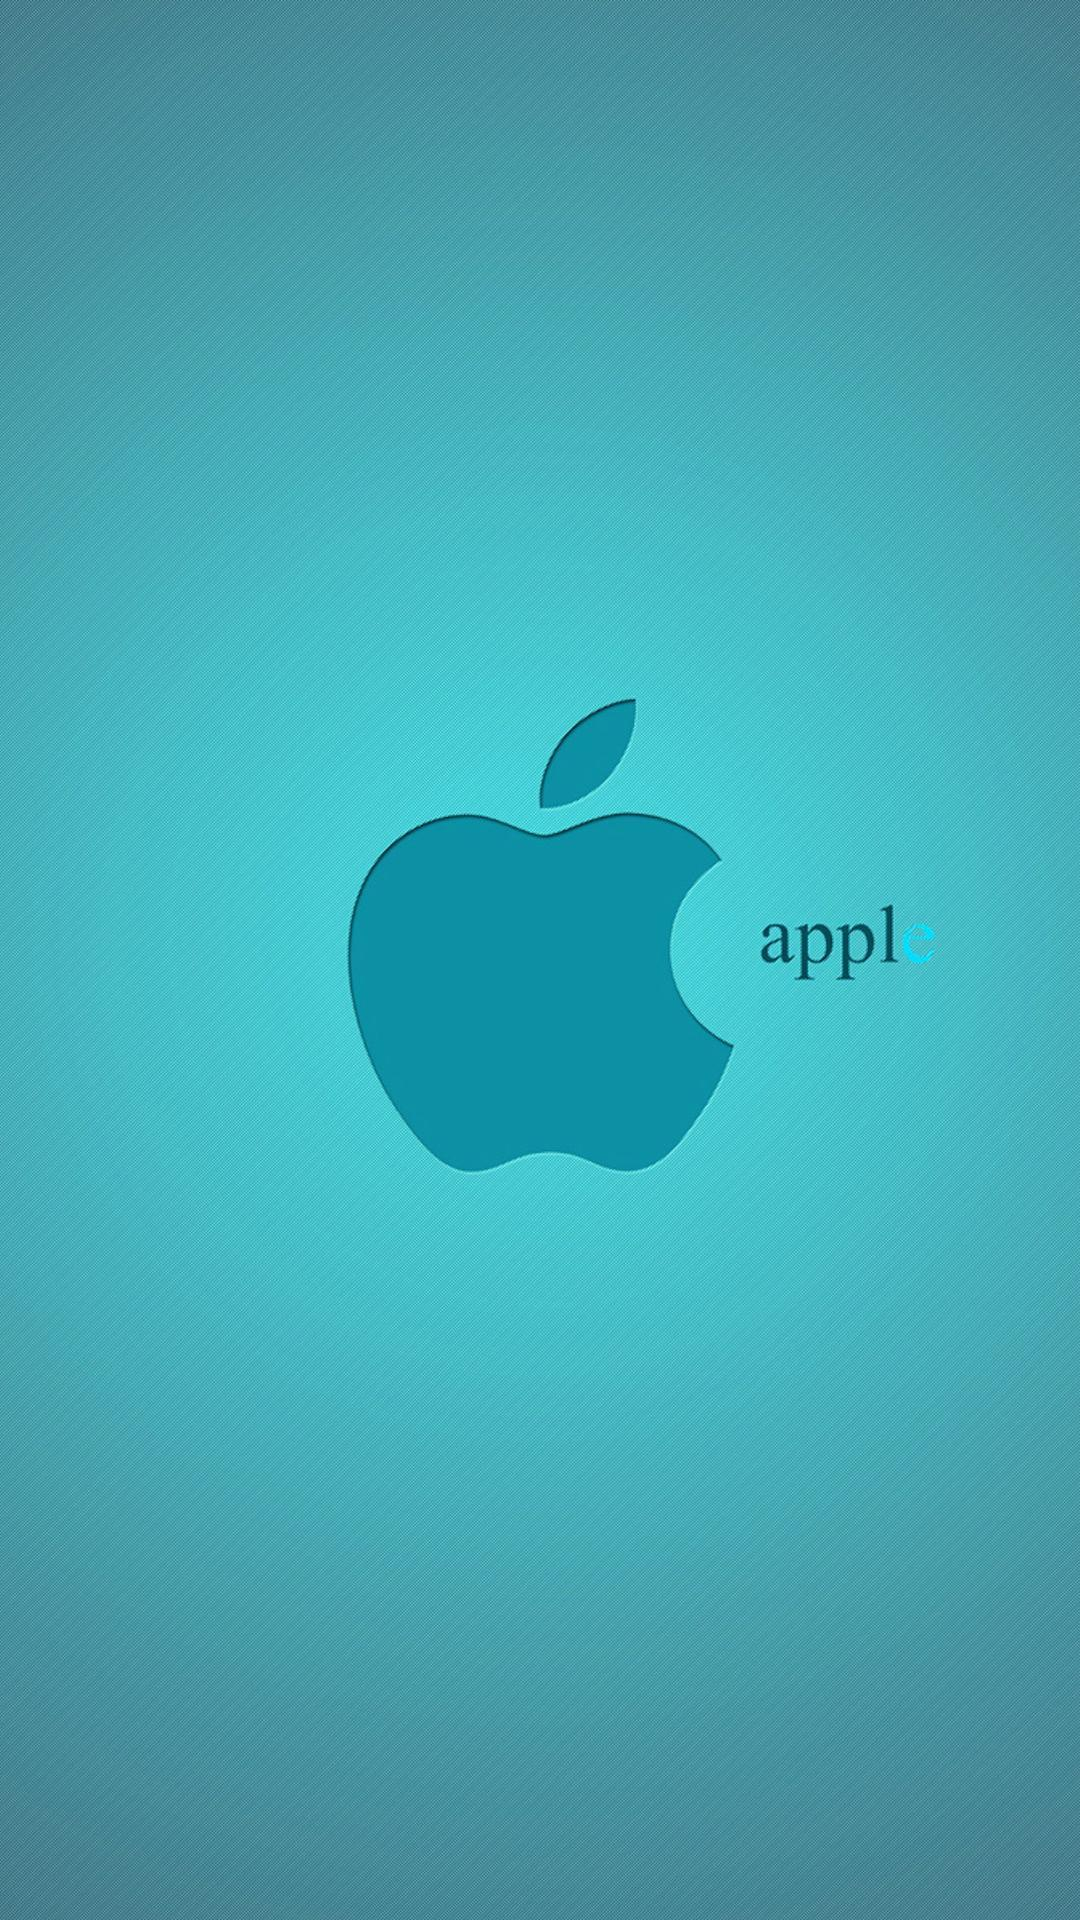 Apple Logo Wallpaper For Iphone 7 Plus Vinnyoleo Vegetalinfo